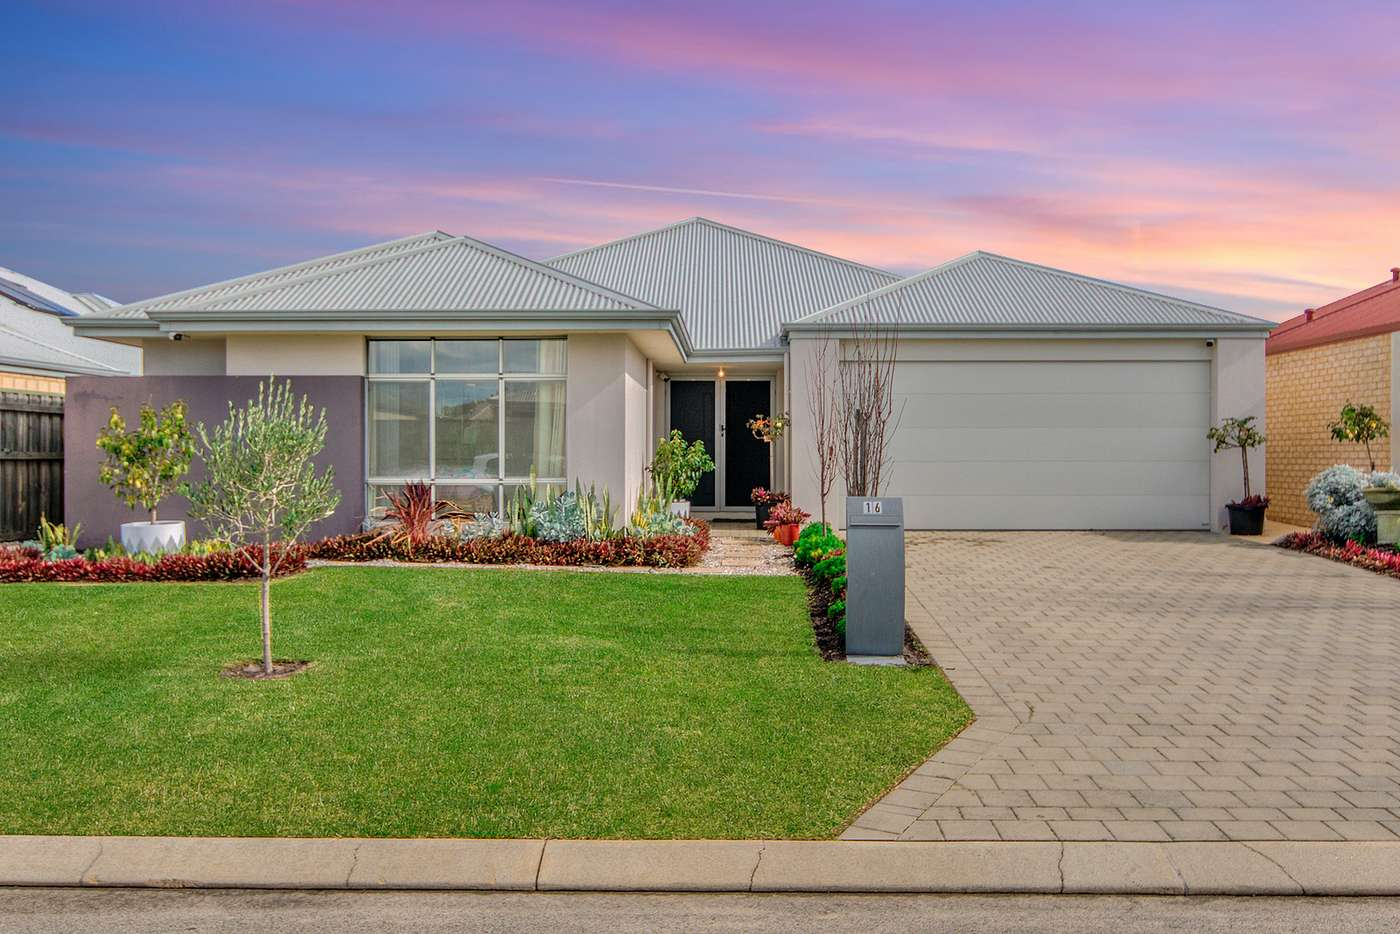 Main view of Homely house listing, 16 Catseye Crescent, Wellard WA 6170